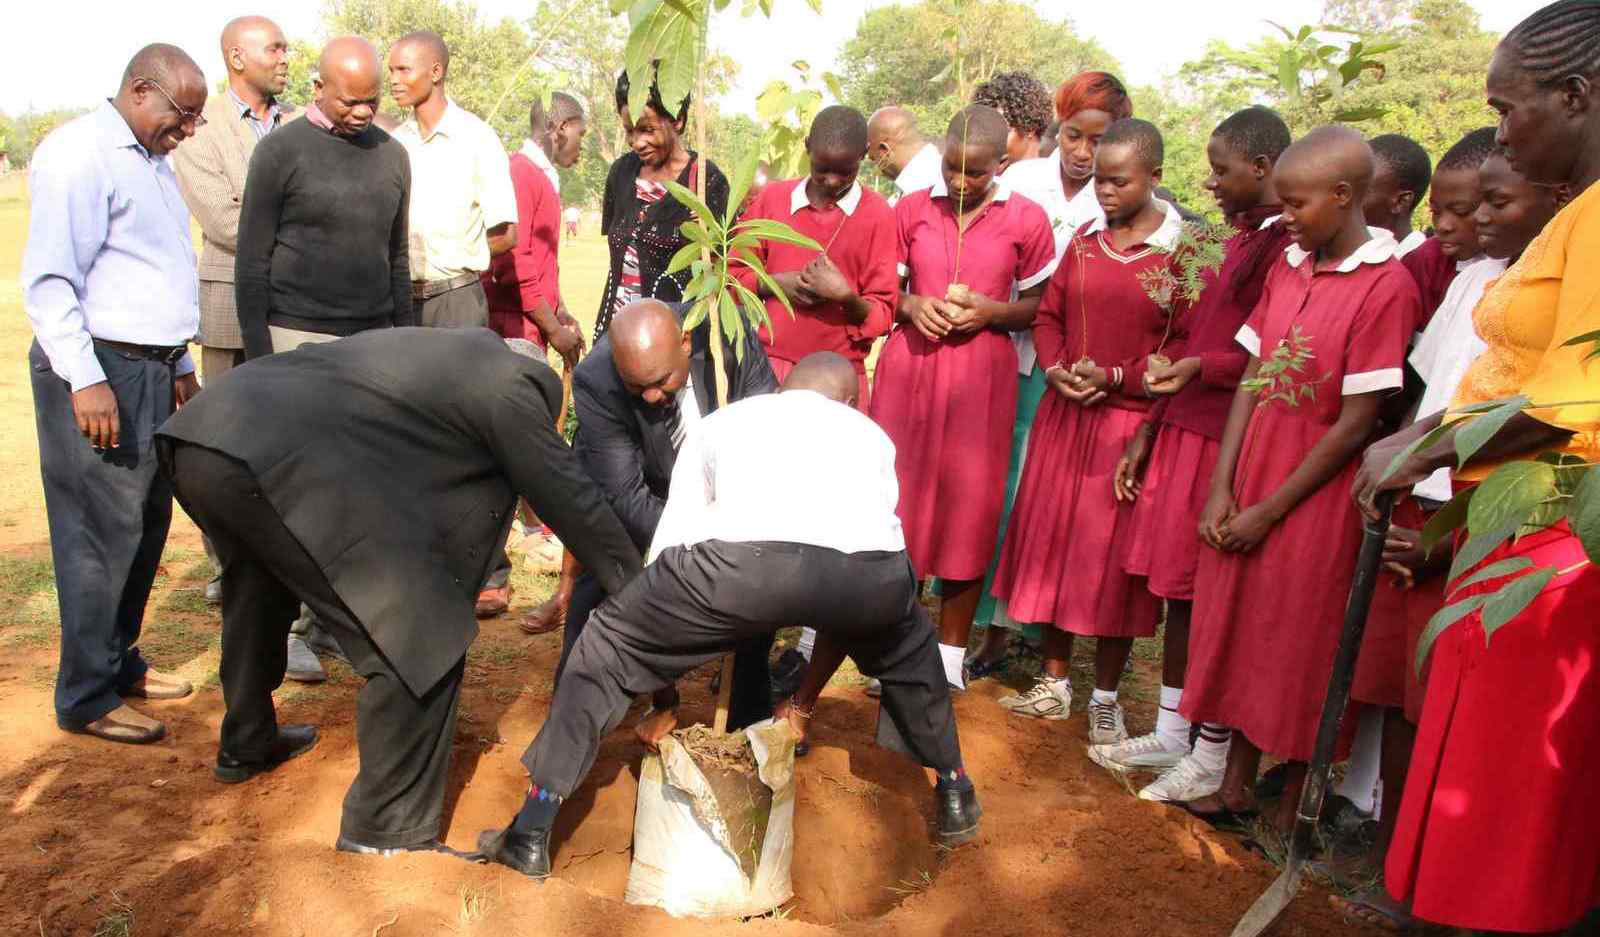 Tree Planting at Sinoko Primary School